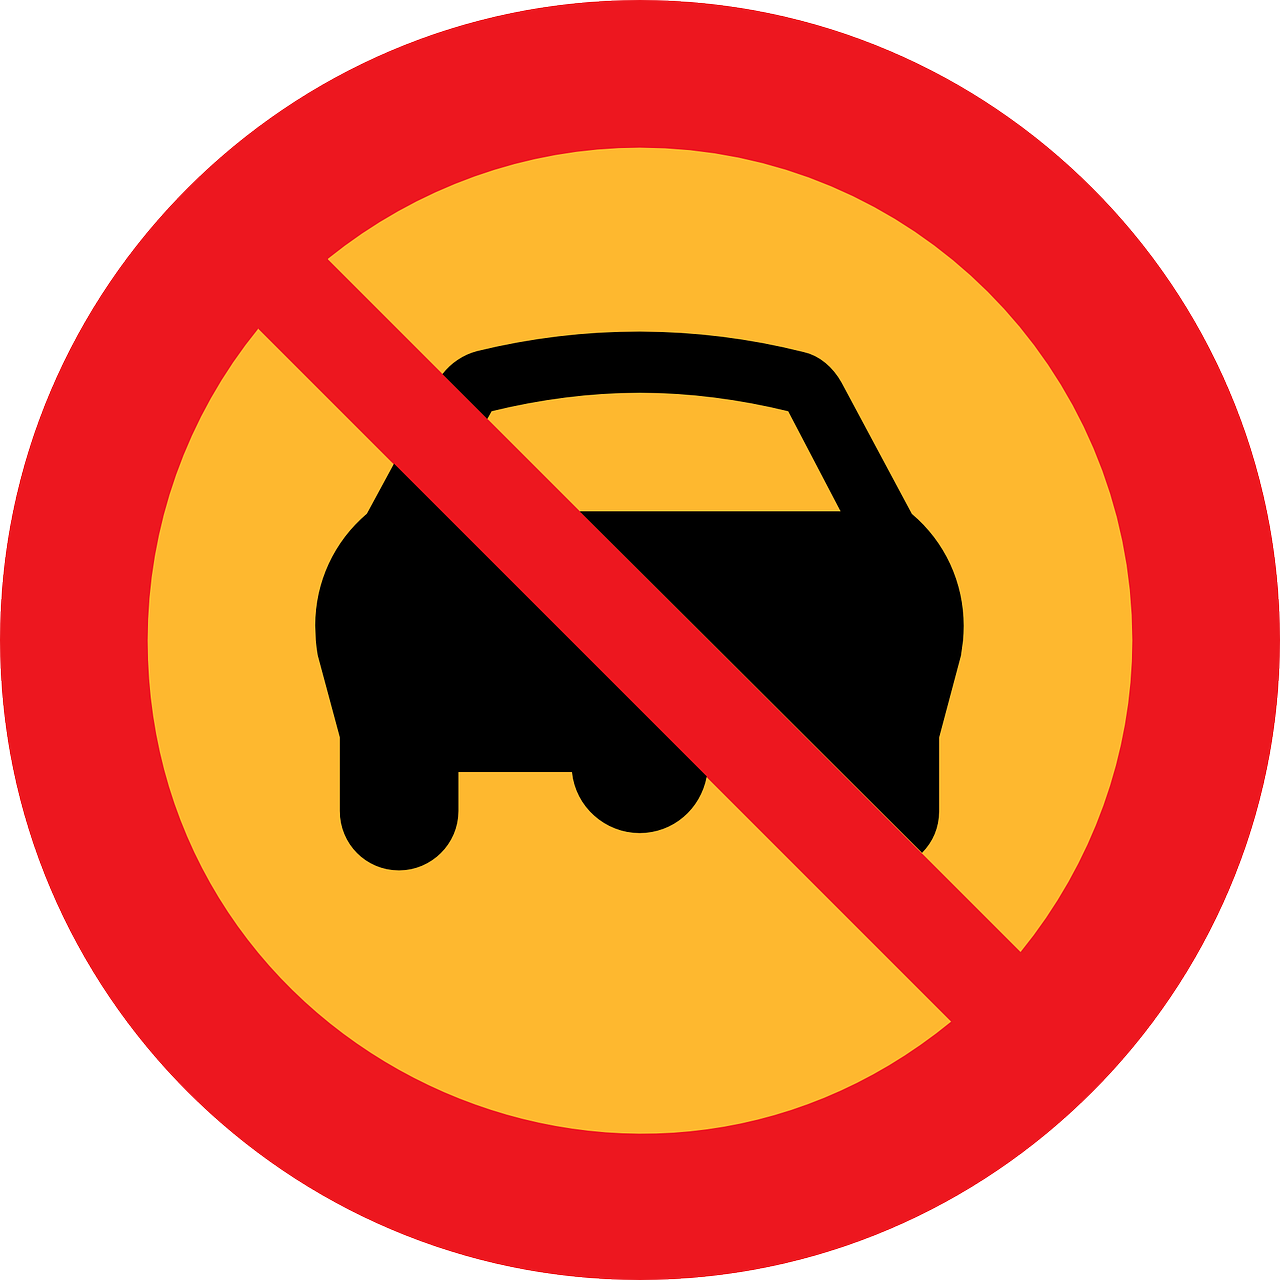 no-driving-98886_1280.png